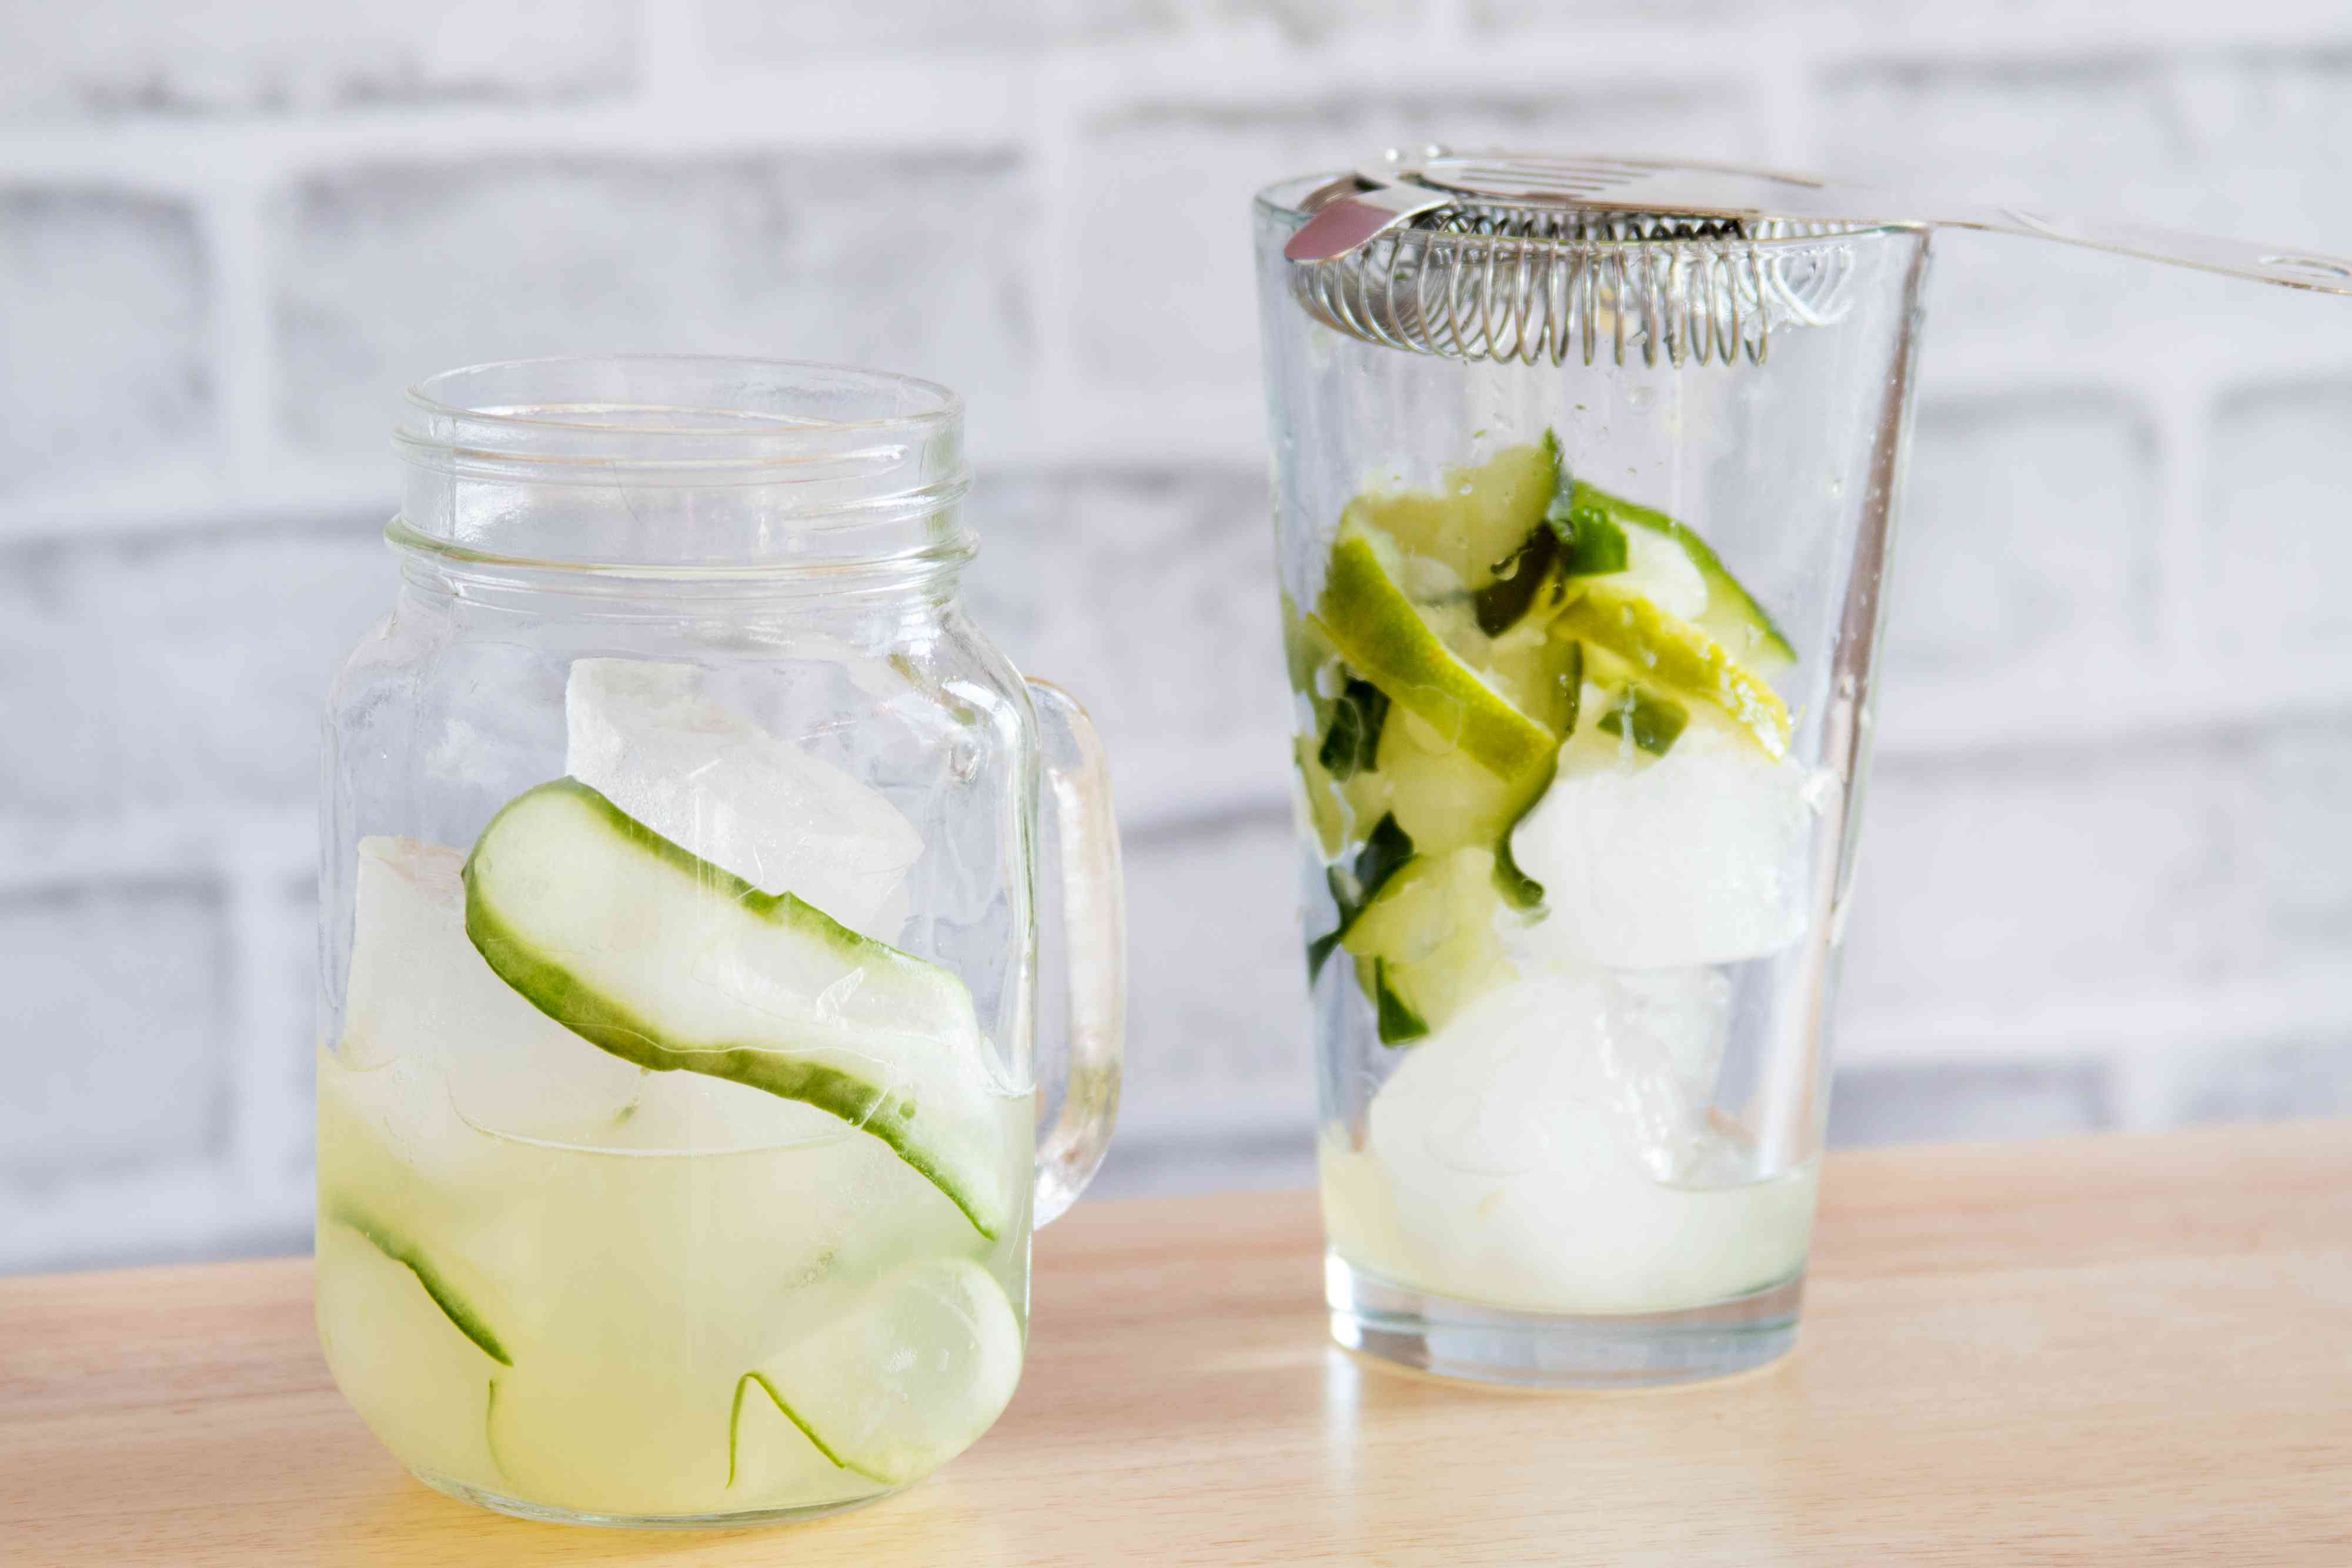 Straining a Cucumber Collins Cocktail